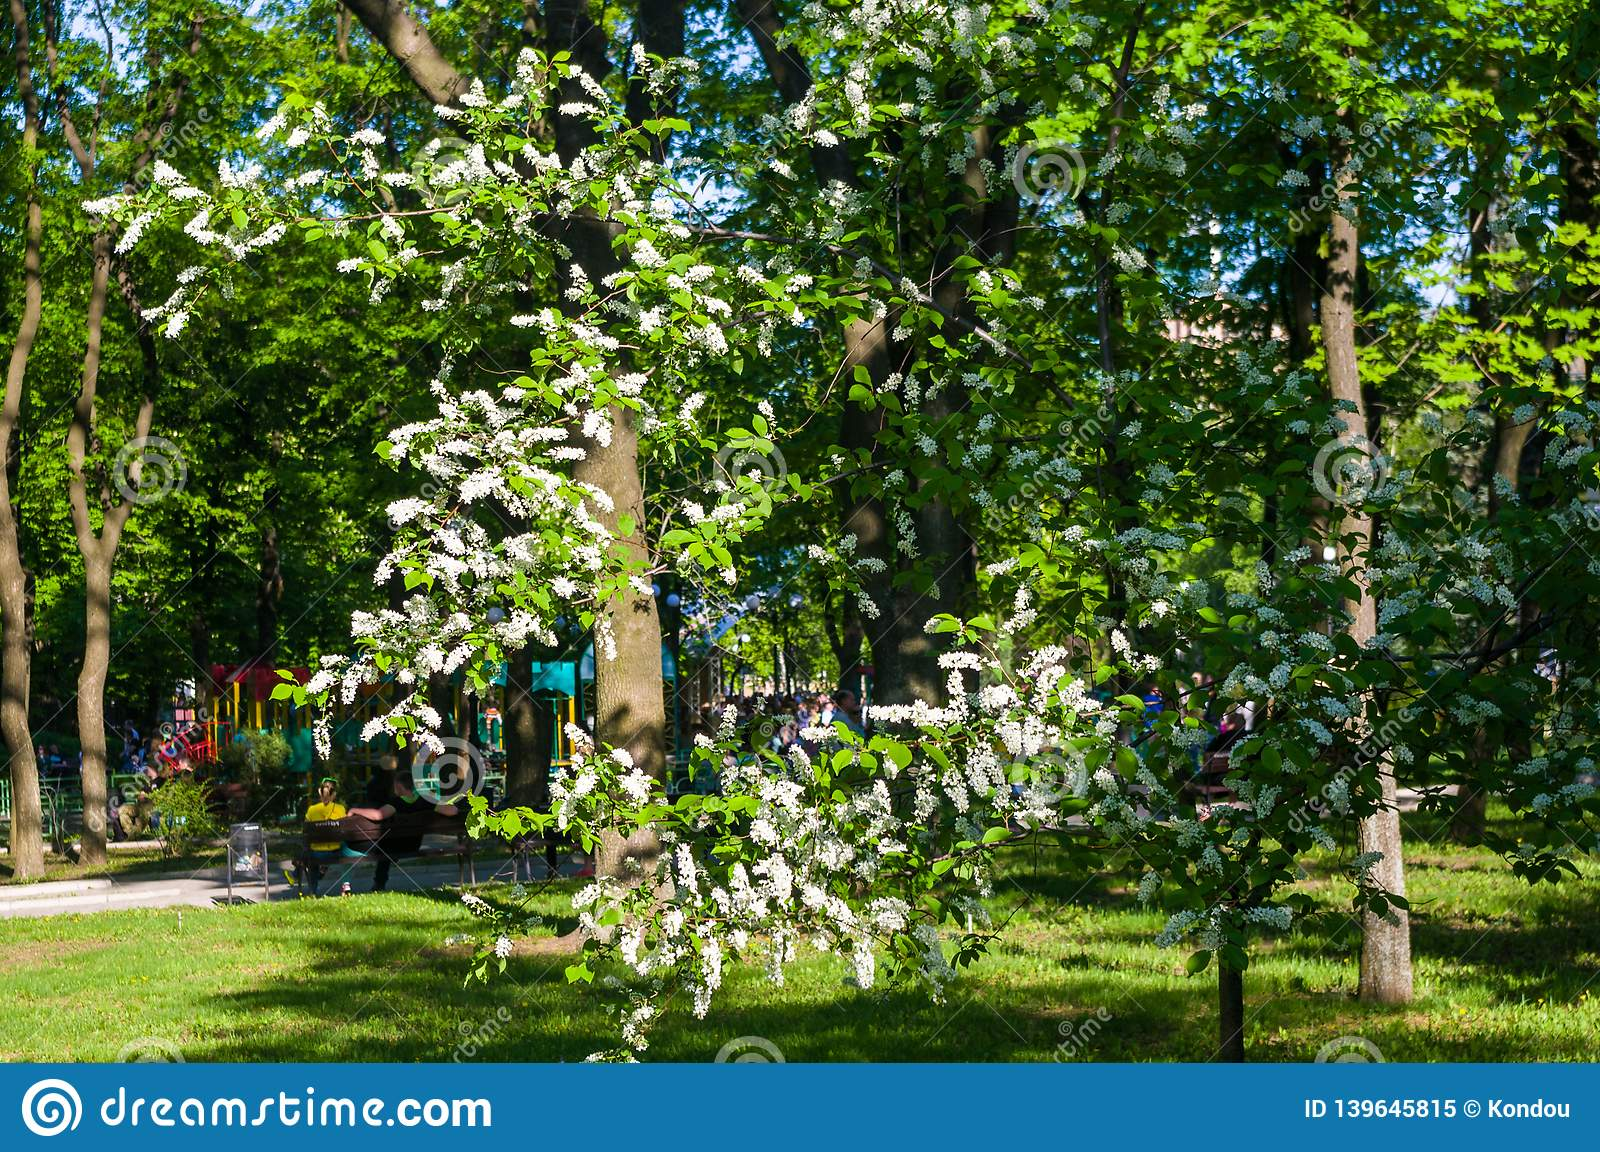 White bird cherry tree with green leaves under the summer sunlight